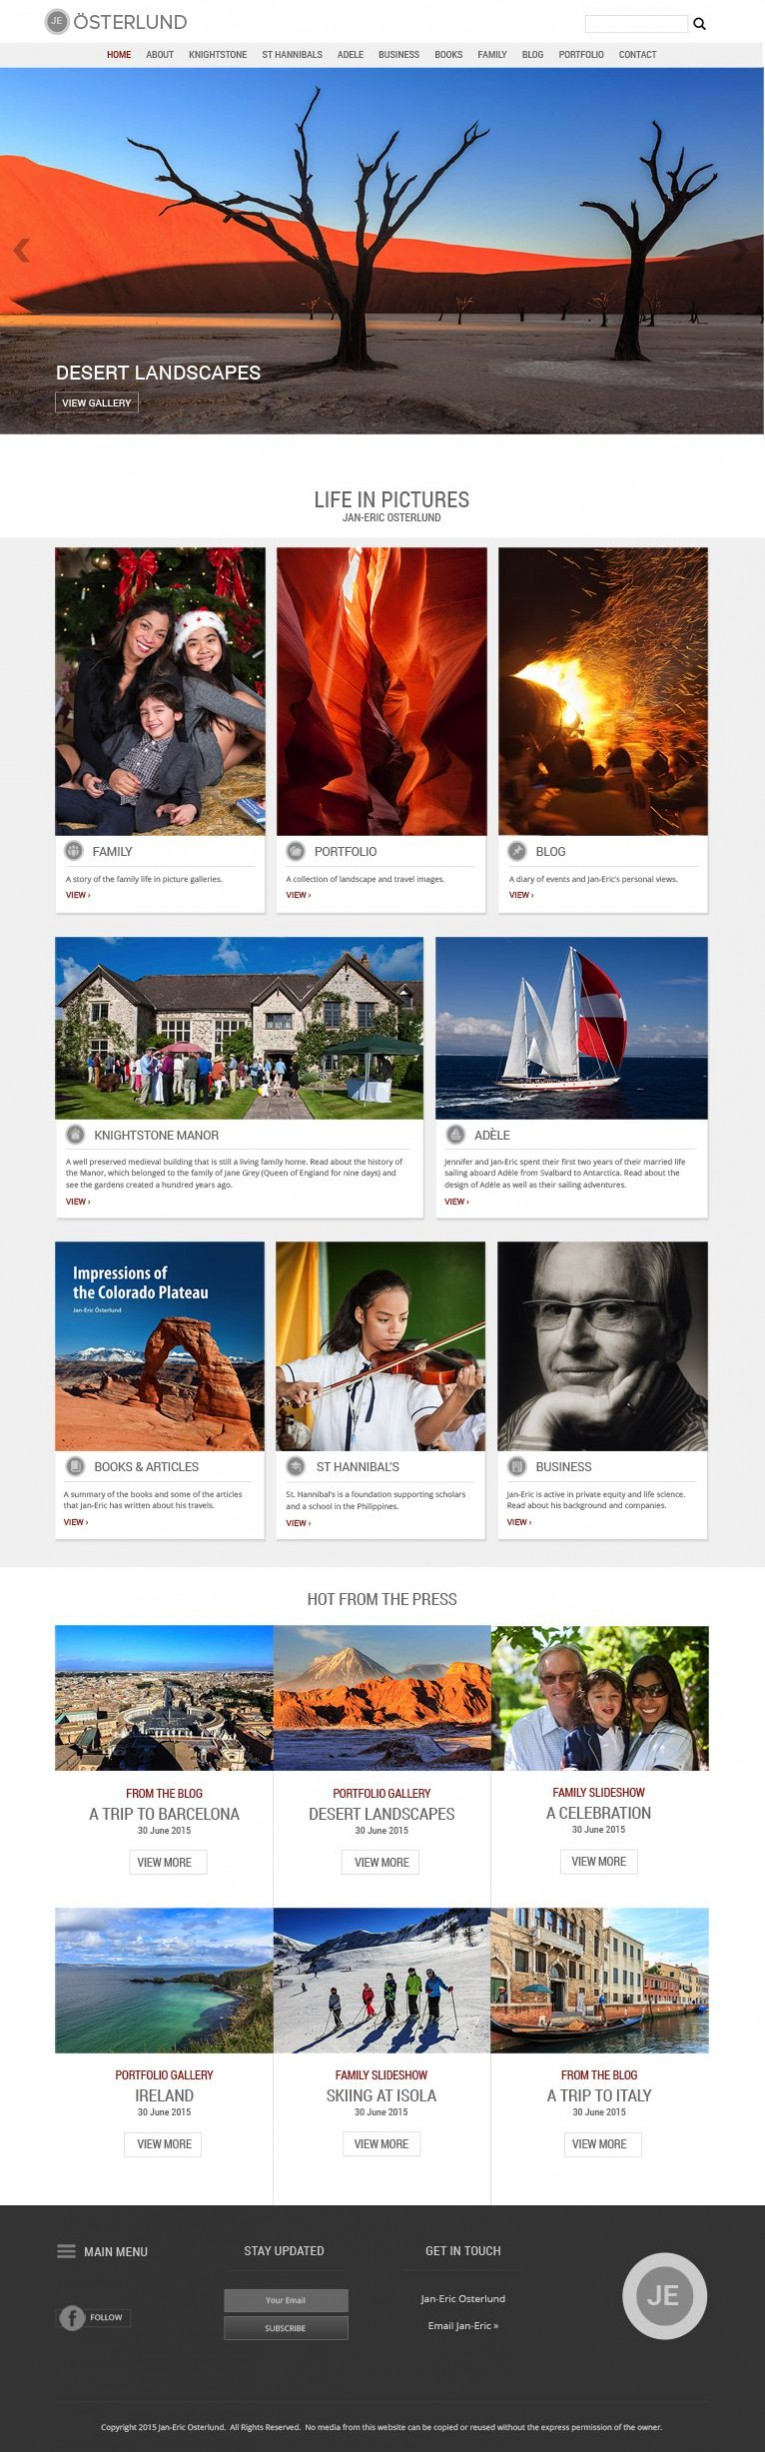 Osterlund home page, fully responsive webdesign